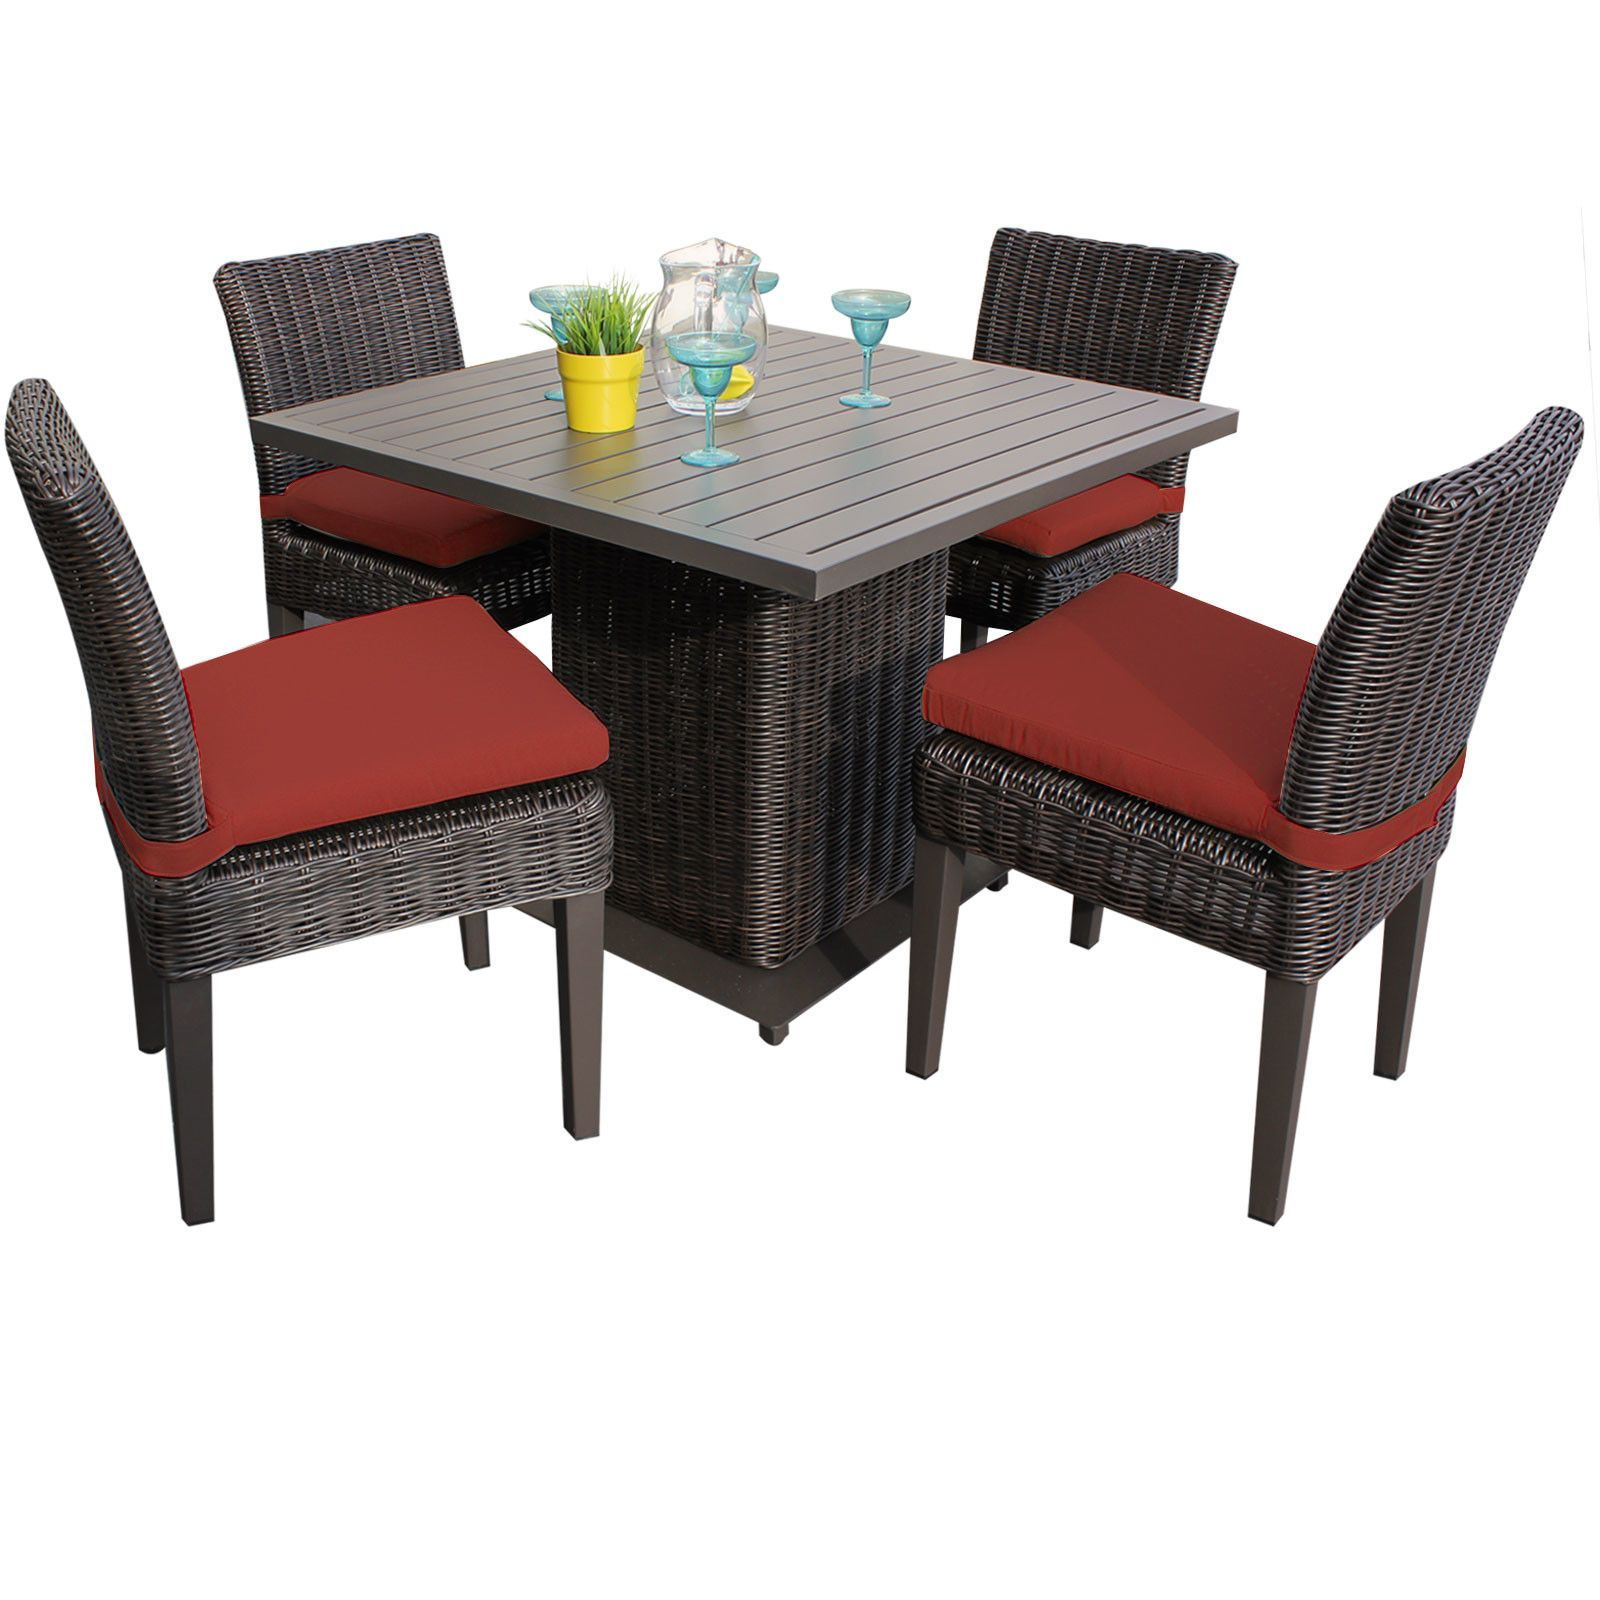 Tankersley piece dining set with cushions products pinterest